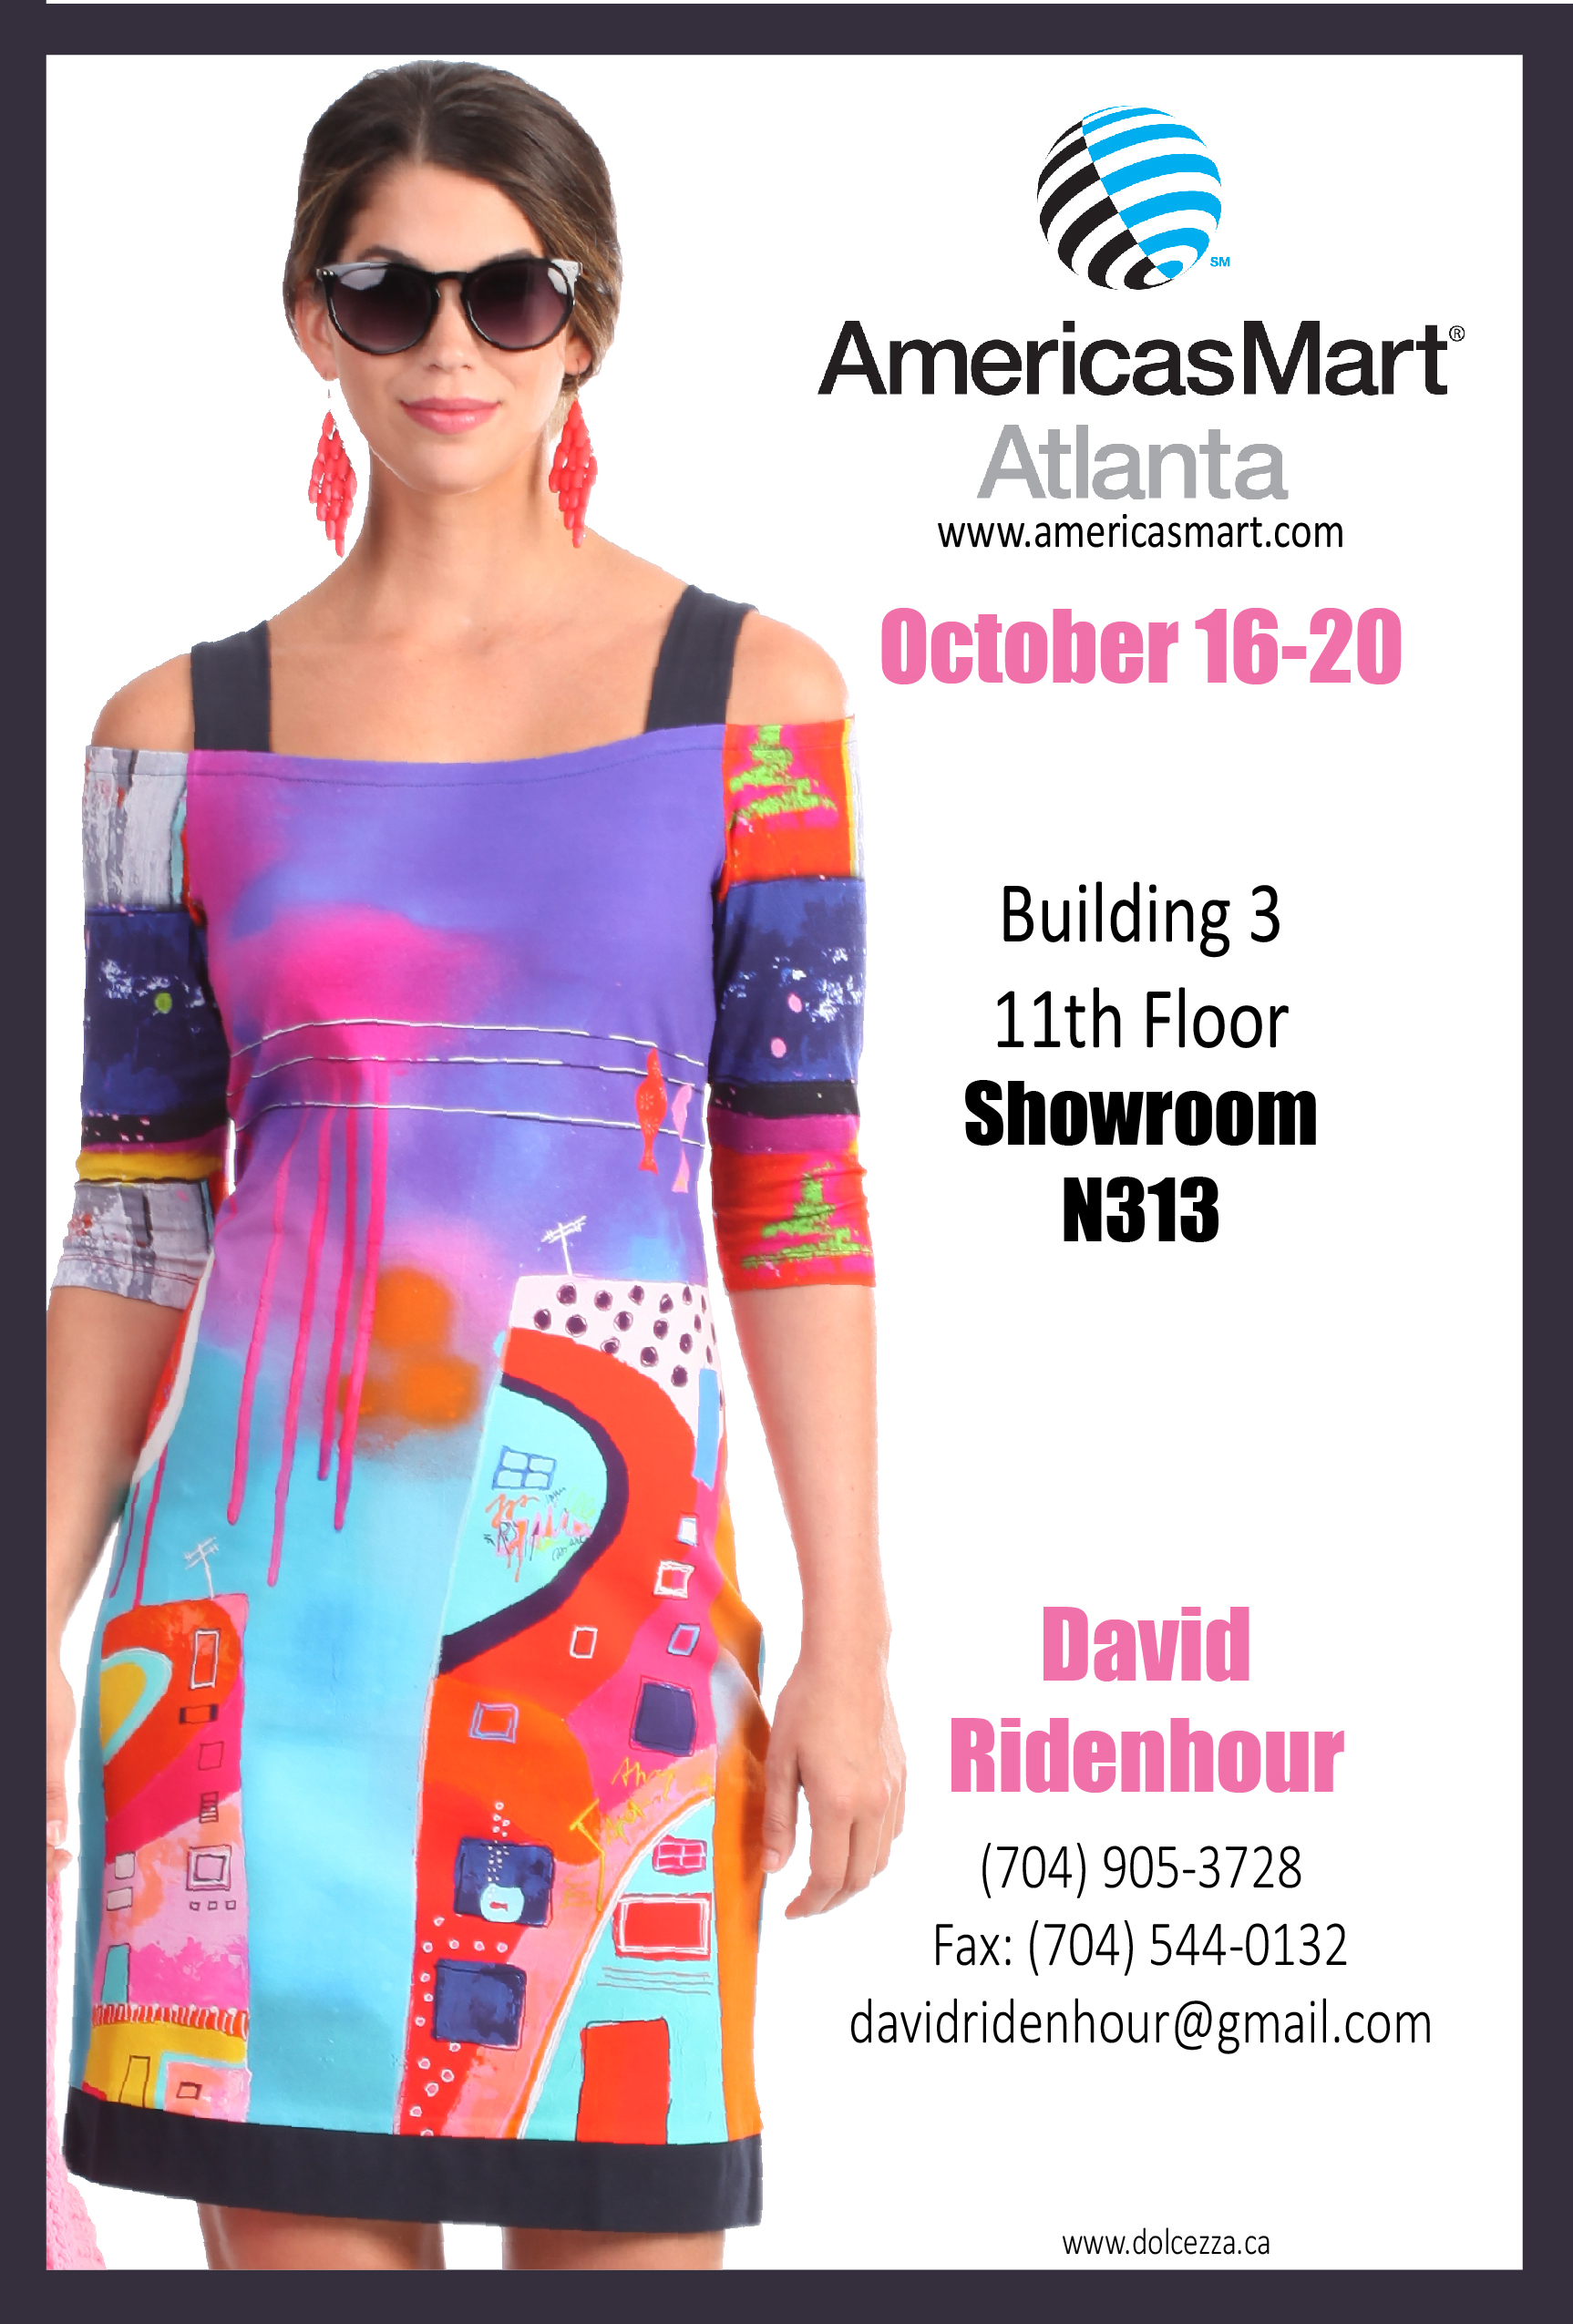 SP19-DavidRidenhour_Atlanta_Oct16-20web_1